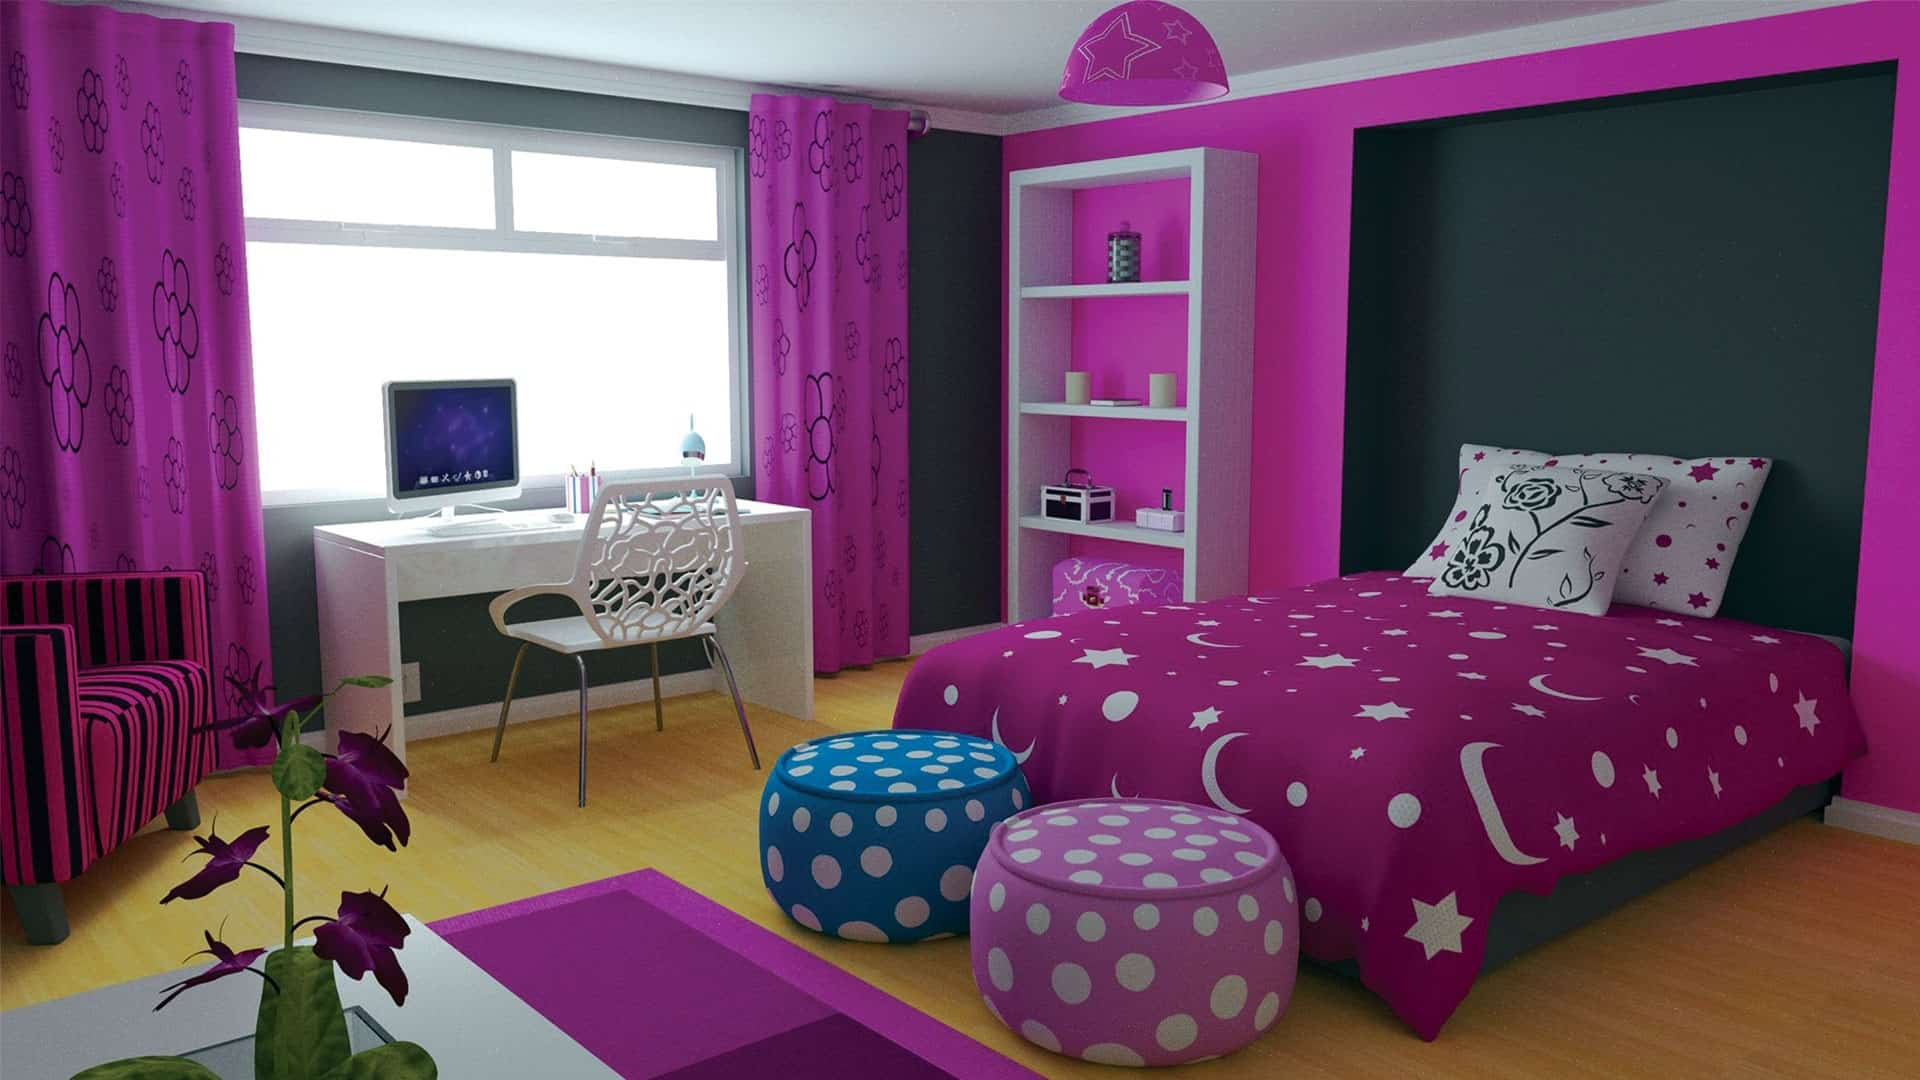 Bedroom Decorating Ideas In Purple home decor trends 2017: purple teen room